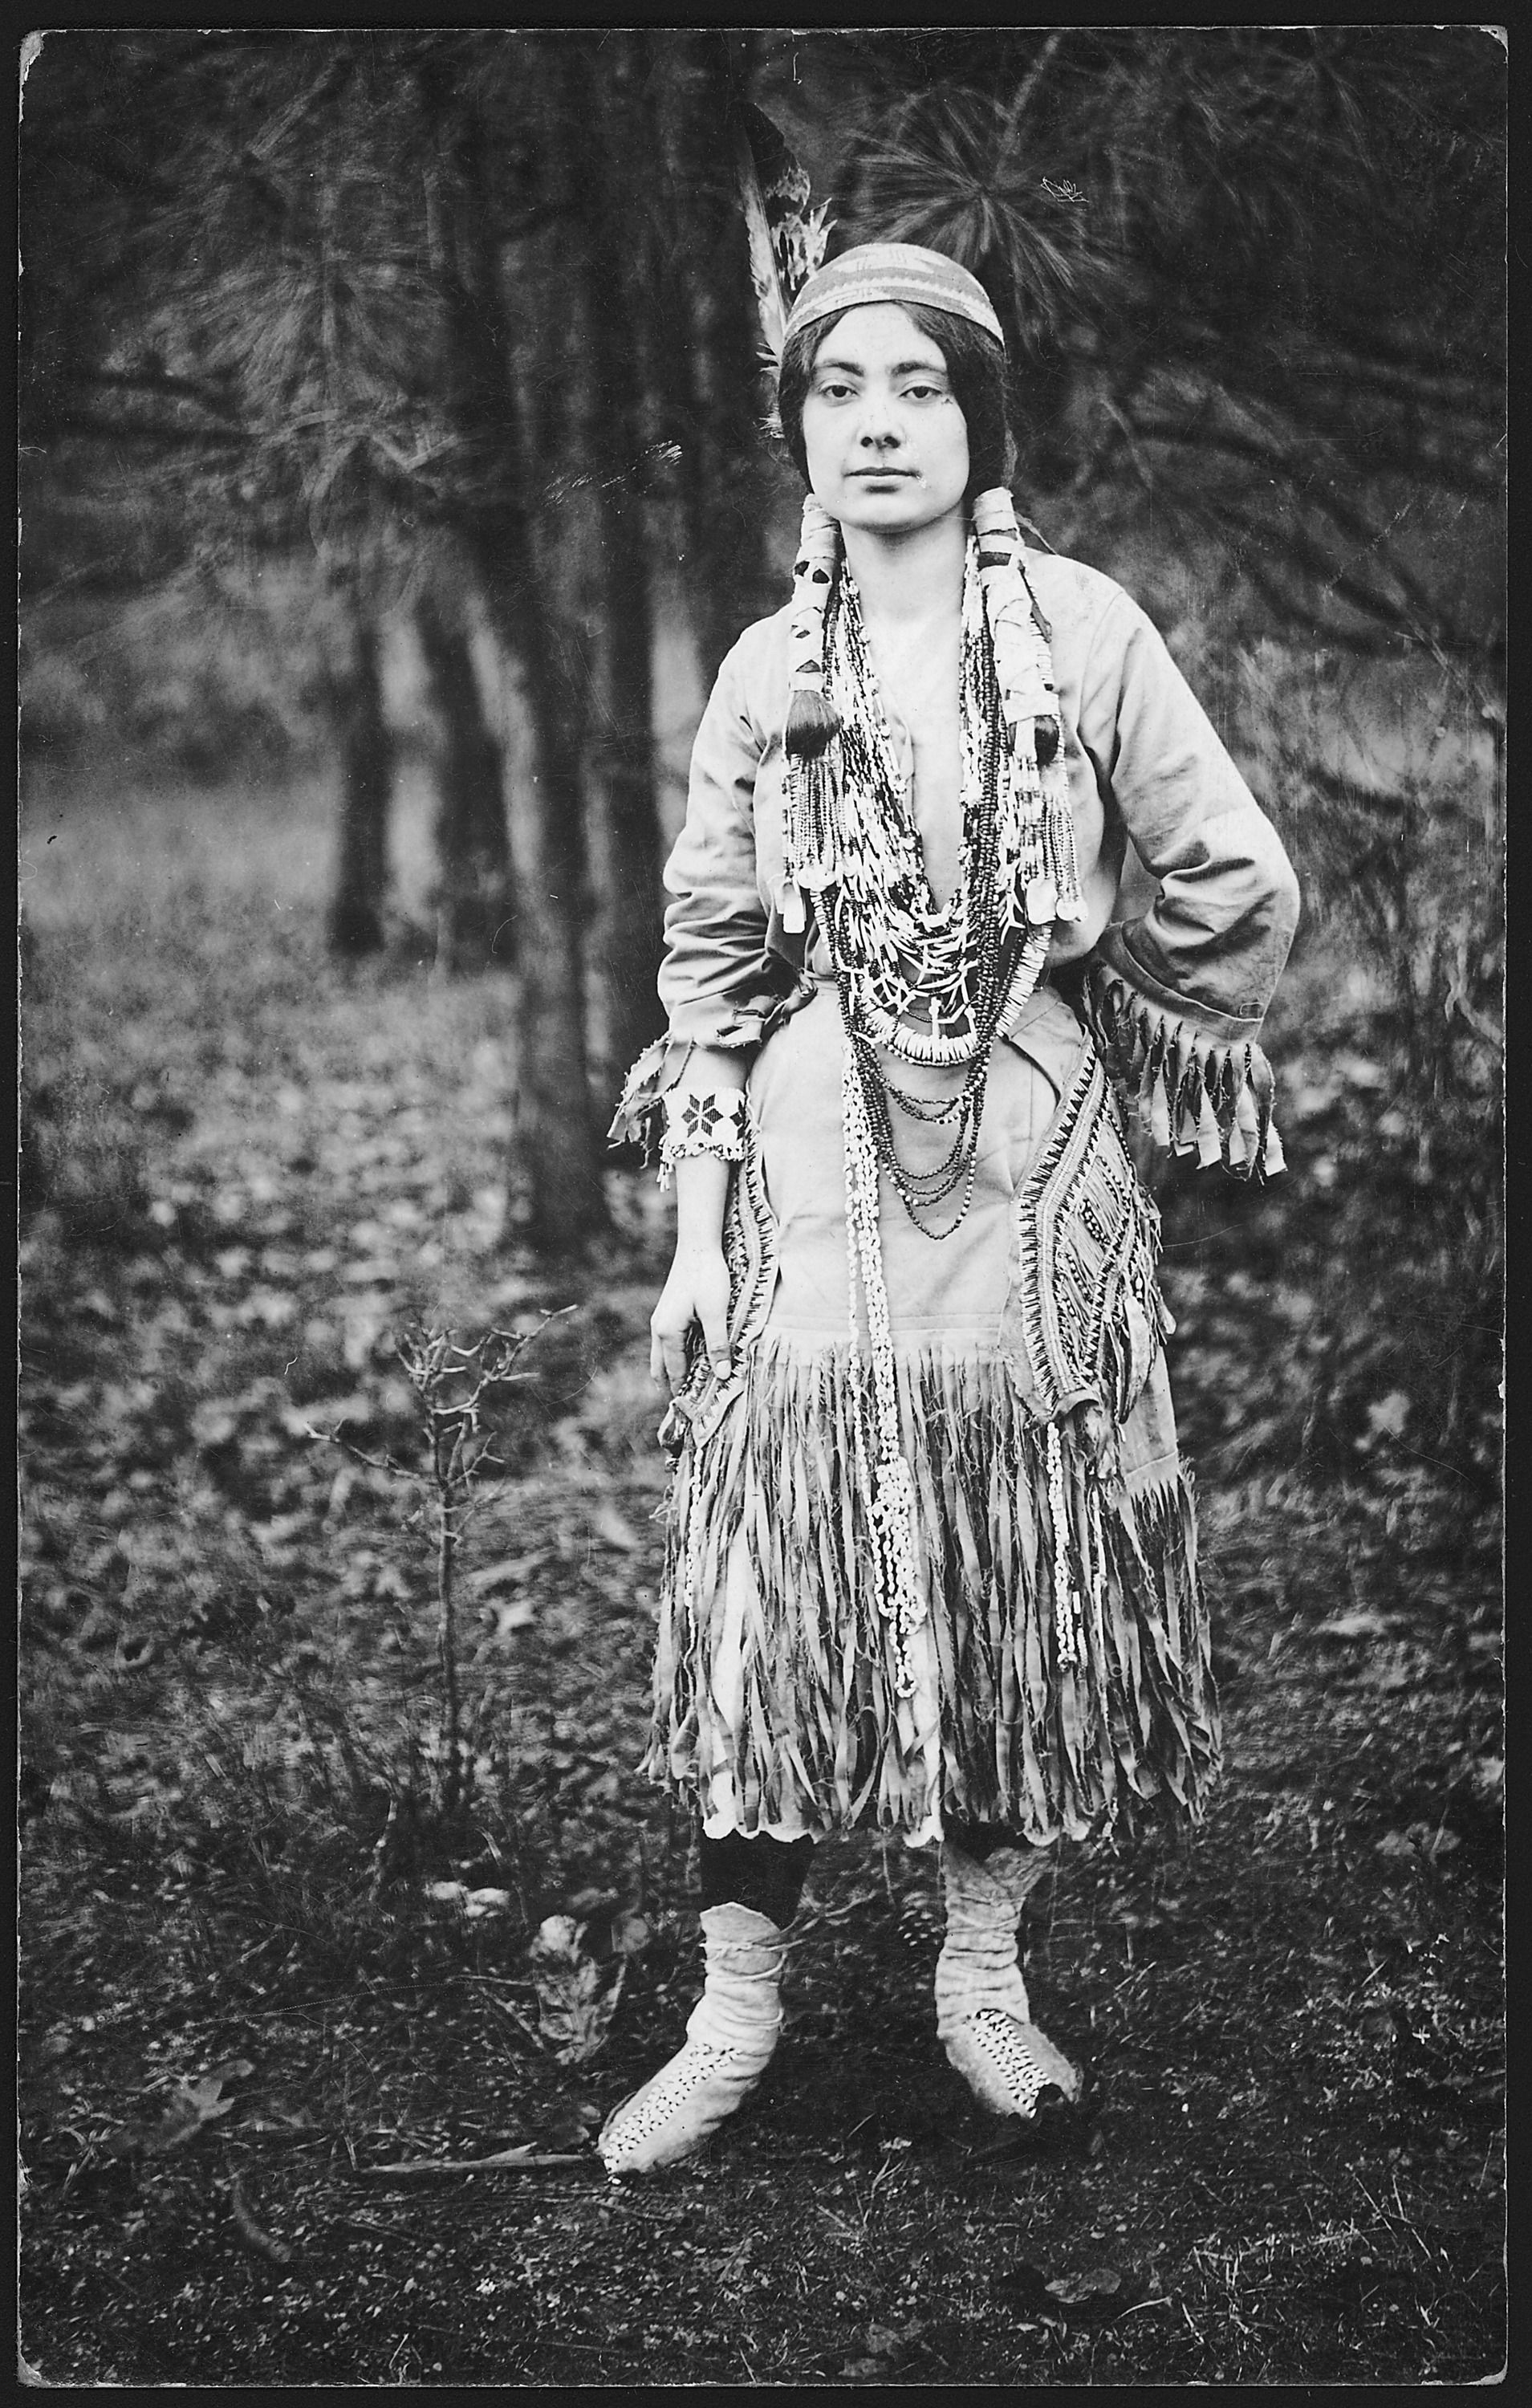 An old photograph of an Native American Maiden in Traditional Dress